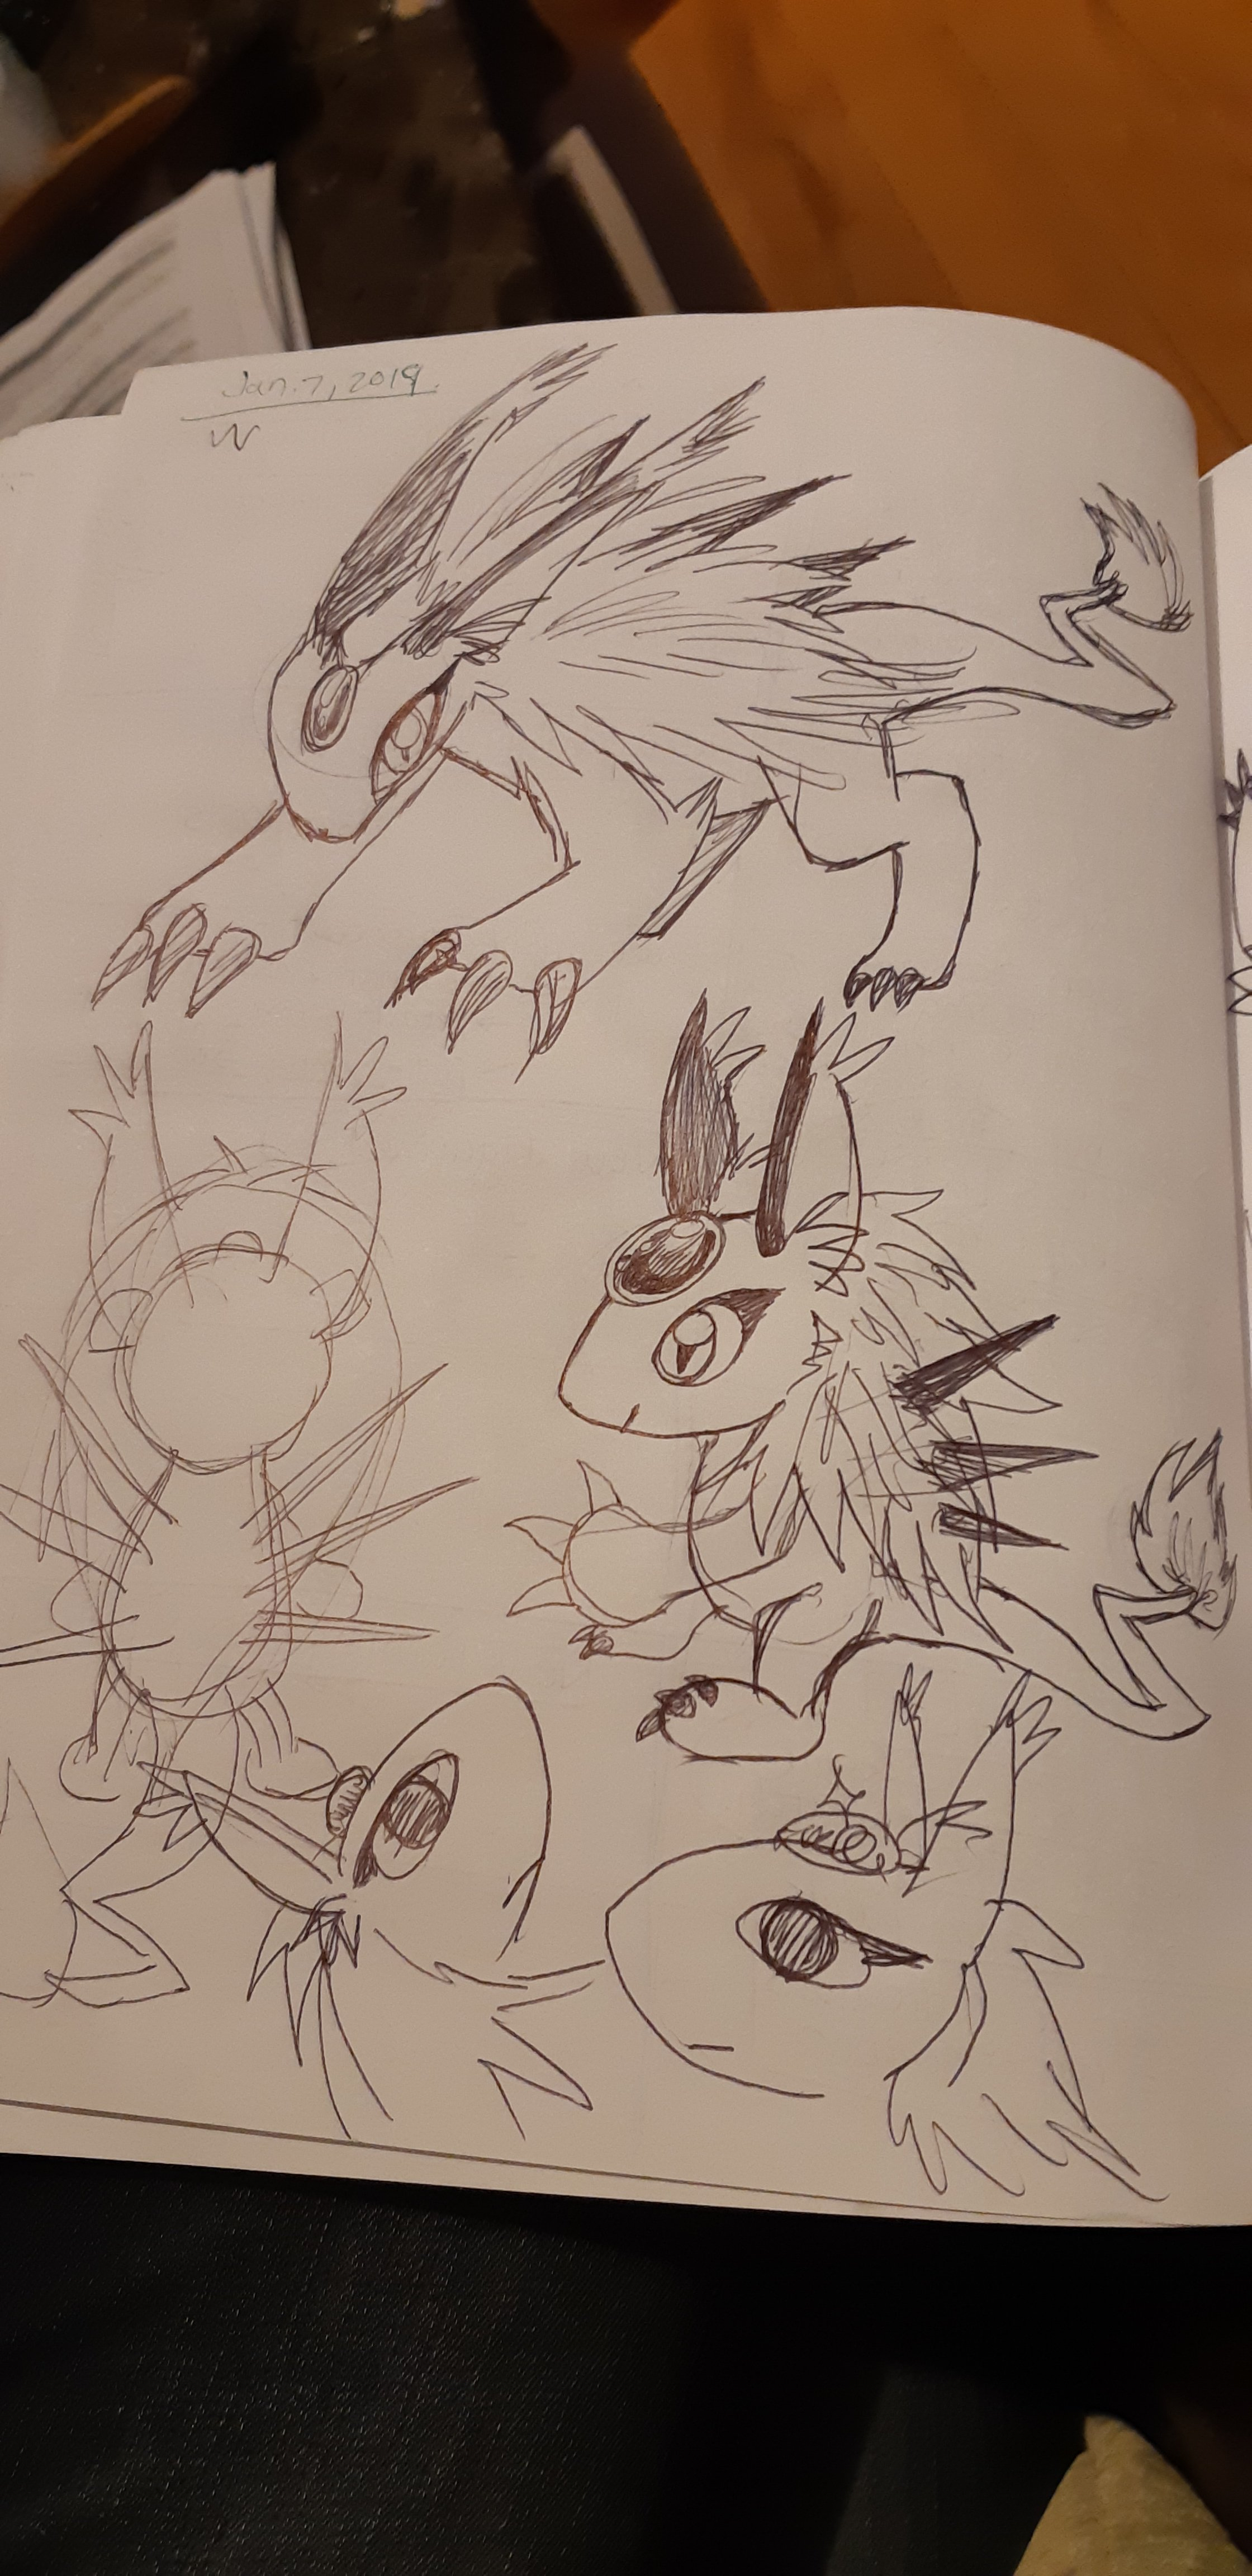 Concept sketches, depicting earlier versions of the zipper dragon. One looks like a rabbit-cat with a jewel on the forehead and long fur on its back.